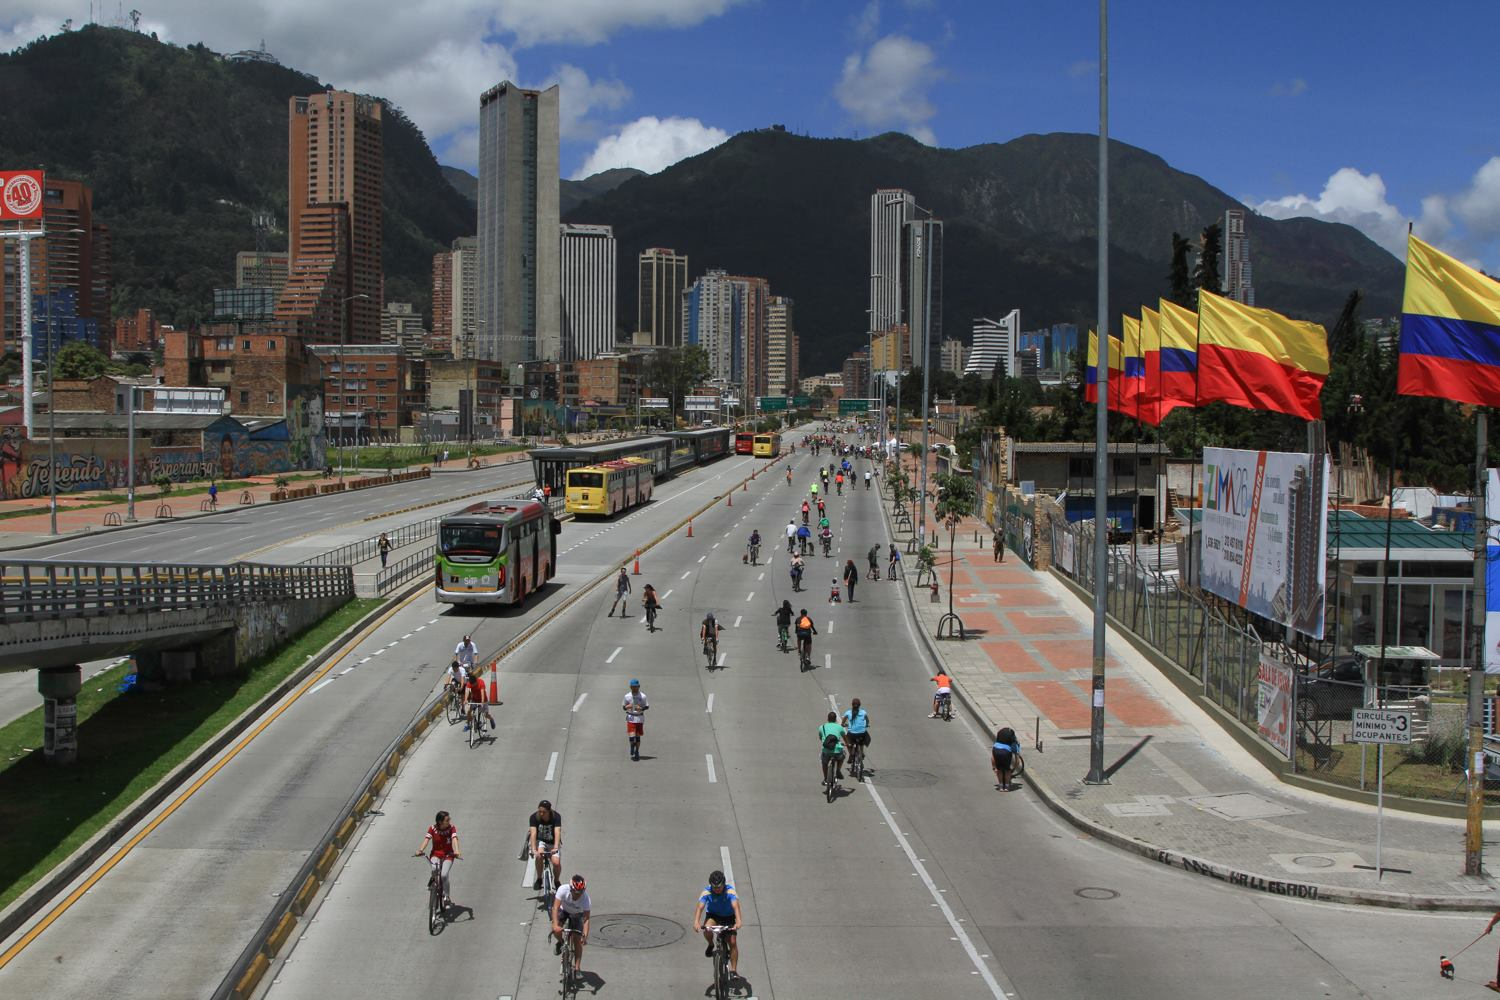 A bike commuters dream- La Ciclovia in Bogota is a popular highway open for cyclists on Sundays since 1974, but during the pandemic has been opened for cyclists every day.